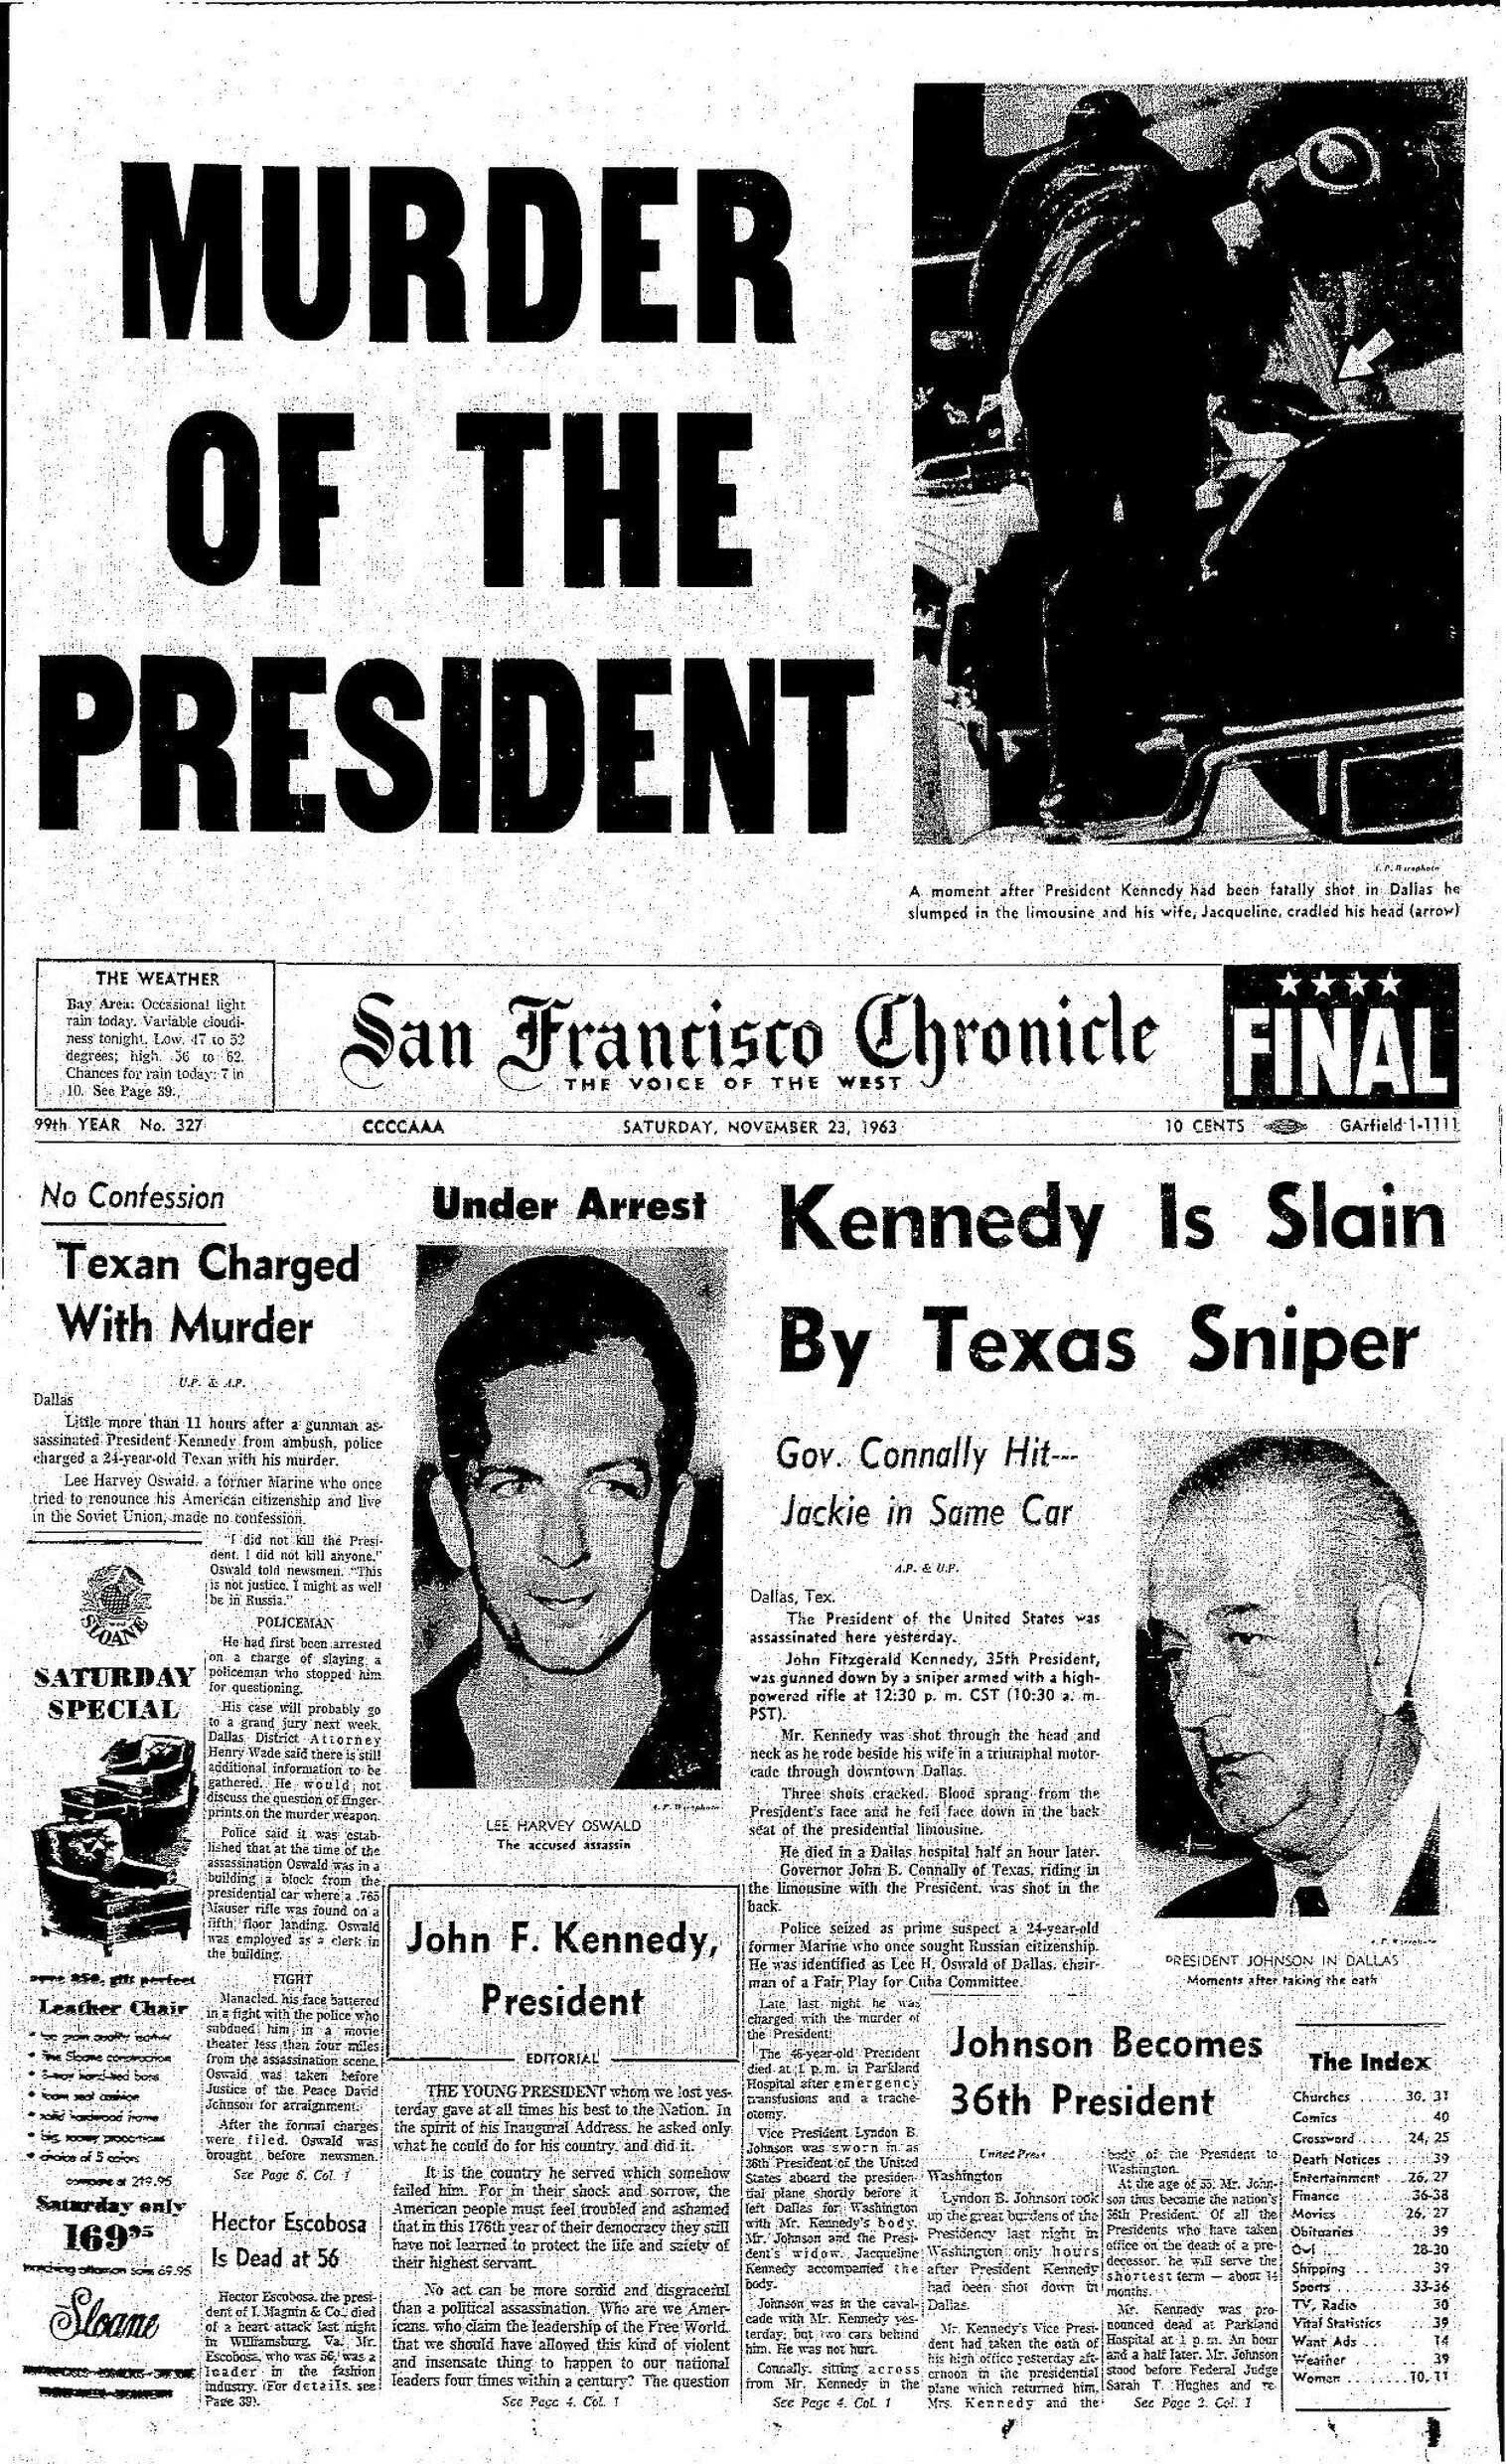 jfk term papers Jfk assassination this research paper jfk assassination and other 63,000 term papers, college essay examples and free essays are available now on reviewessays historylink org essays literature of robert f jfk assassination and 9 kennedy assassination conspiracy theories some plausible, some outlandish how they emerged media.